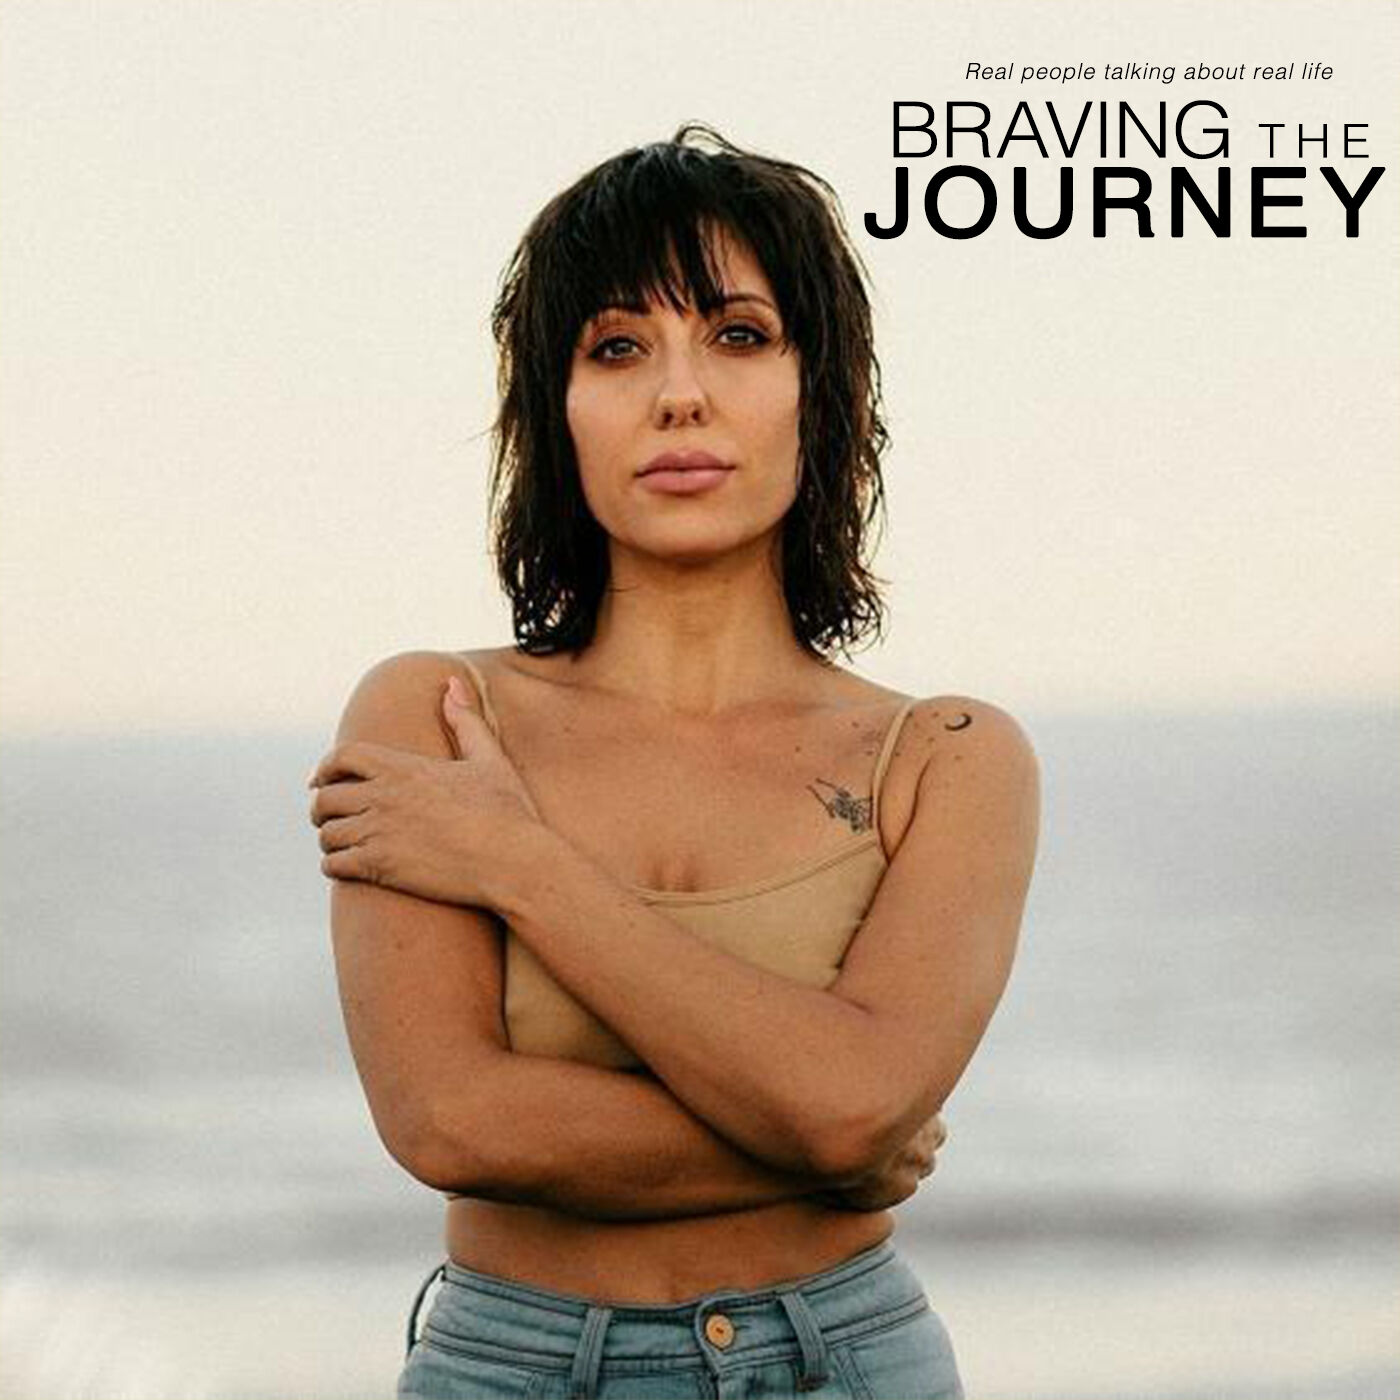 The journey of overcoming trauma and shame with Jennifer Louise